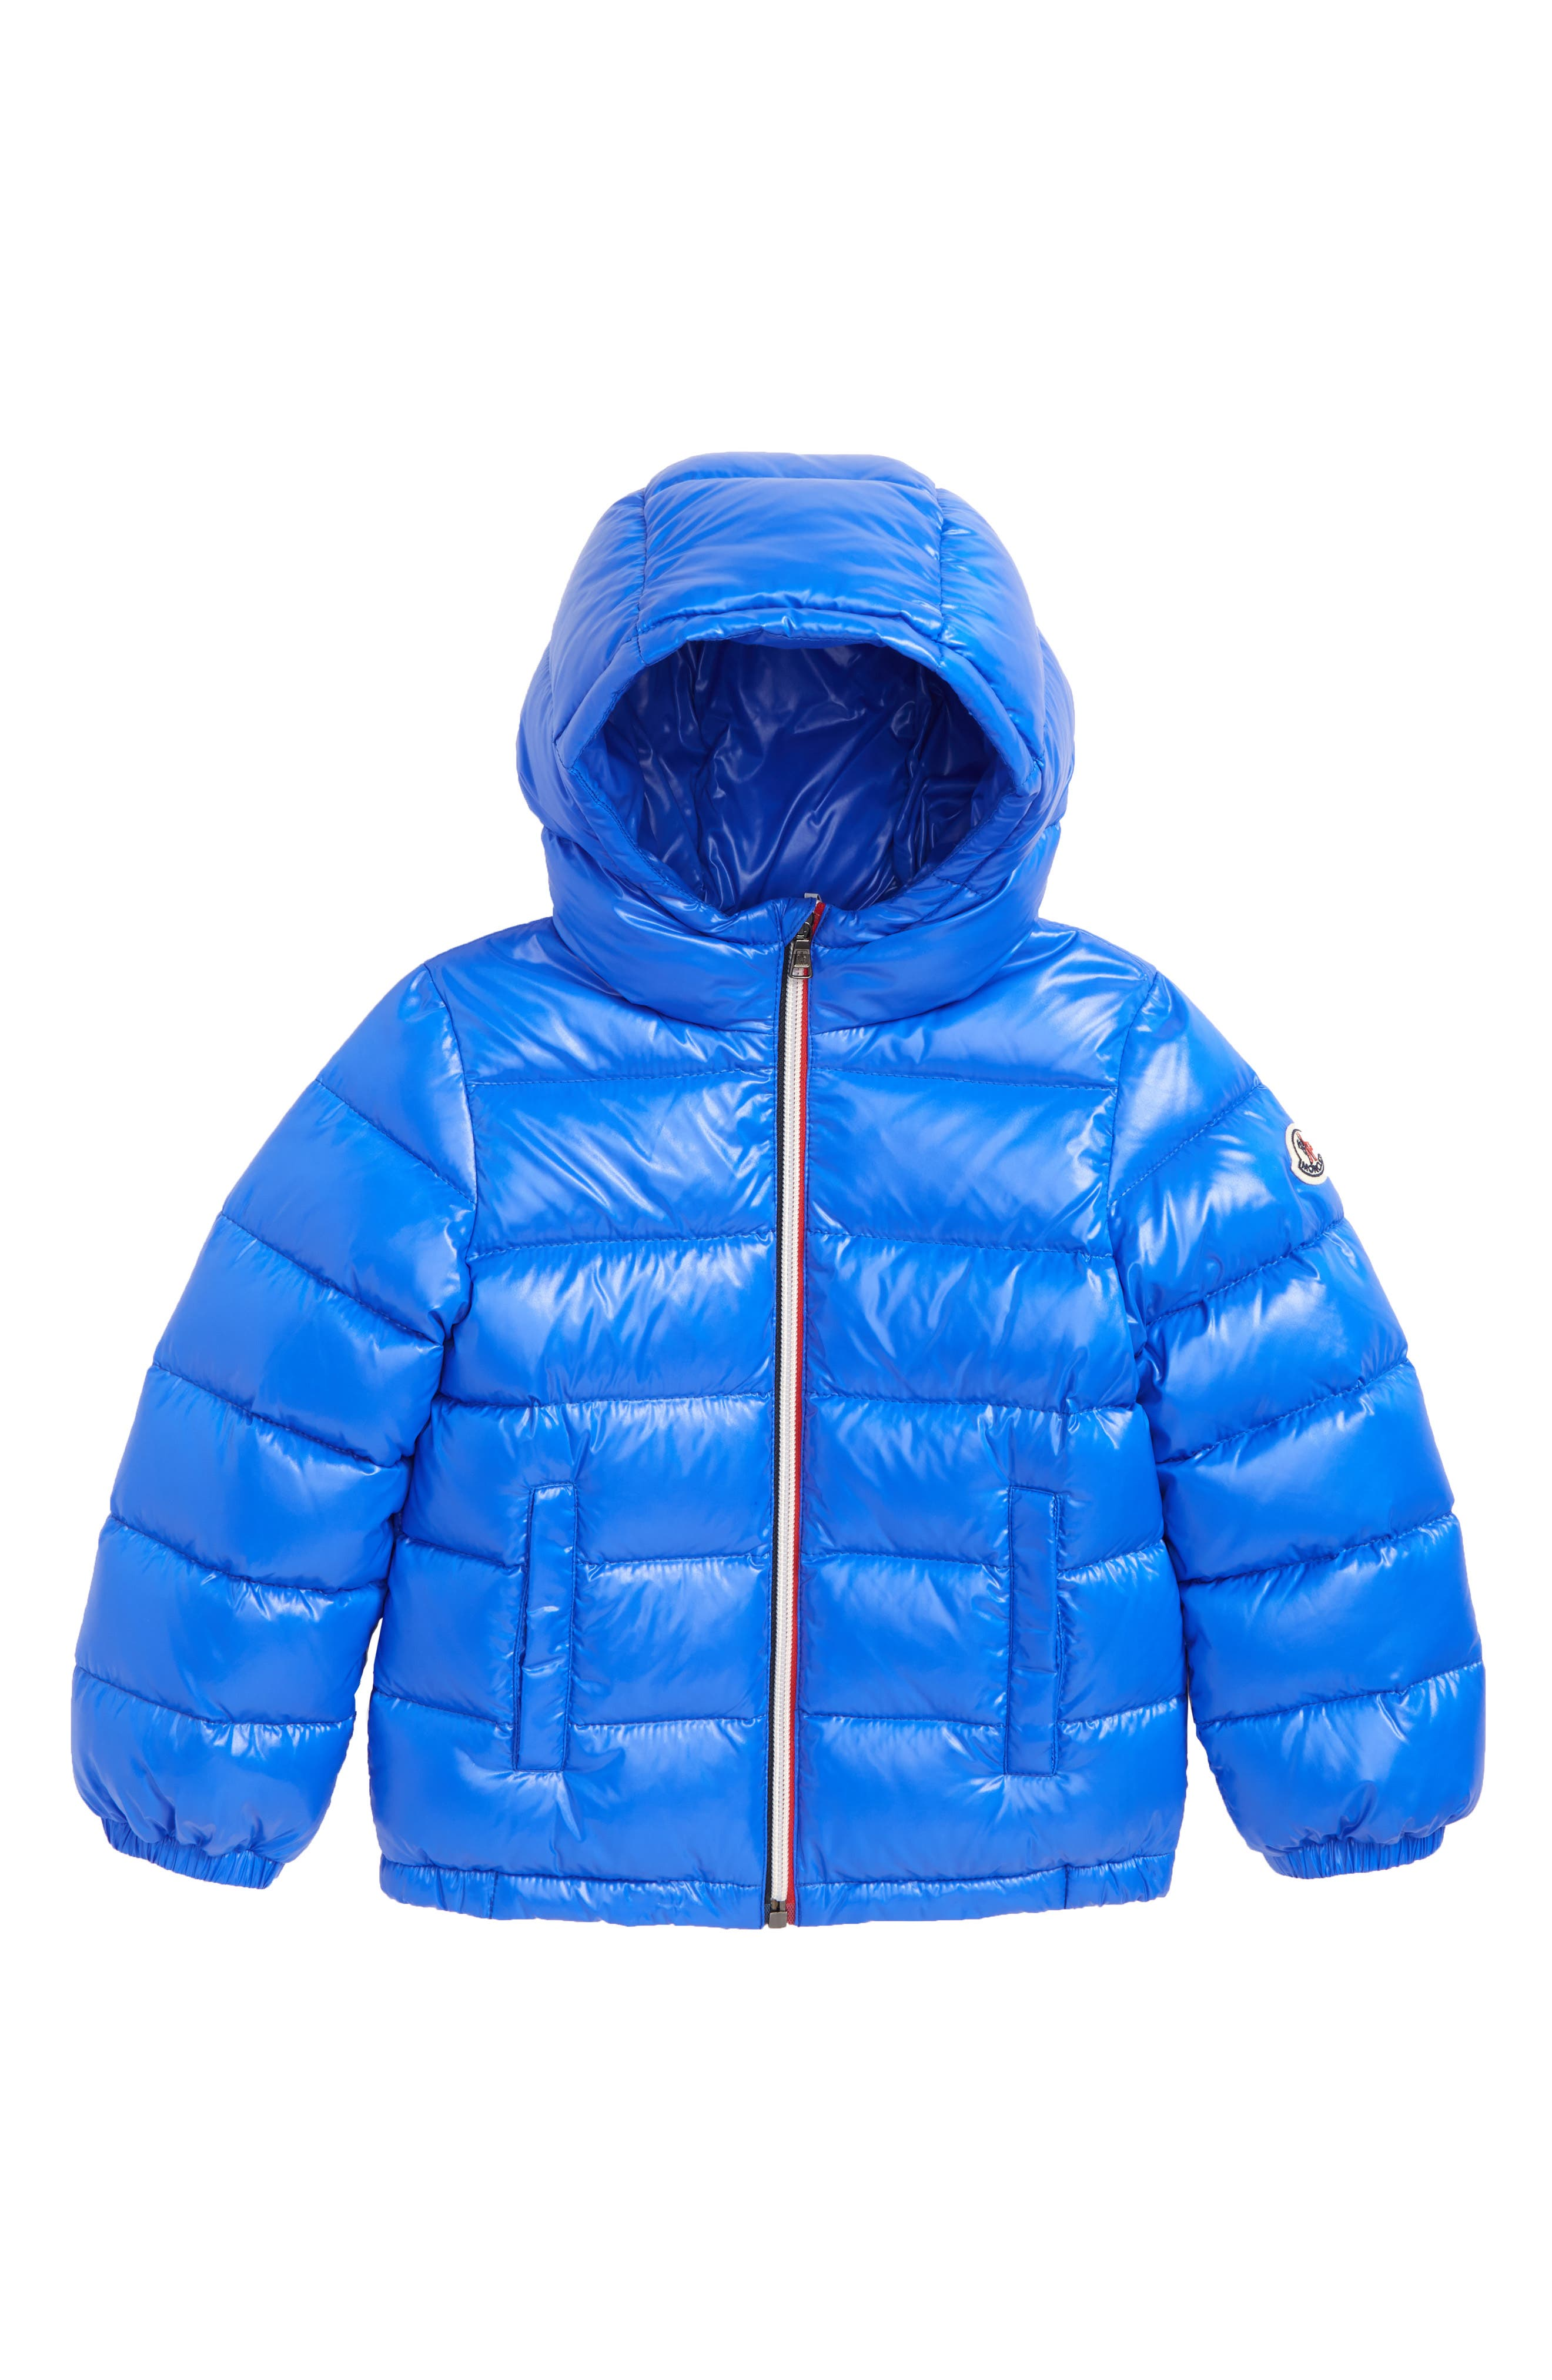 New Aubert Hooded Down Jacket,                             Main thumbnail 1, color,                             BRIGHT BLUE